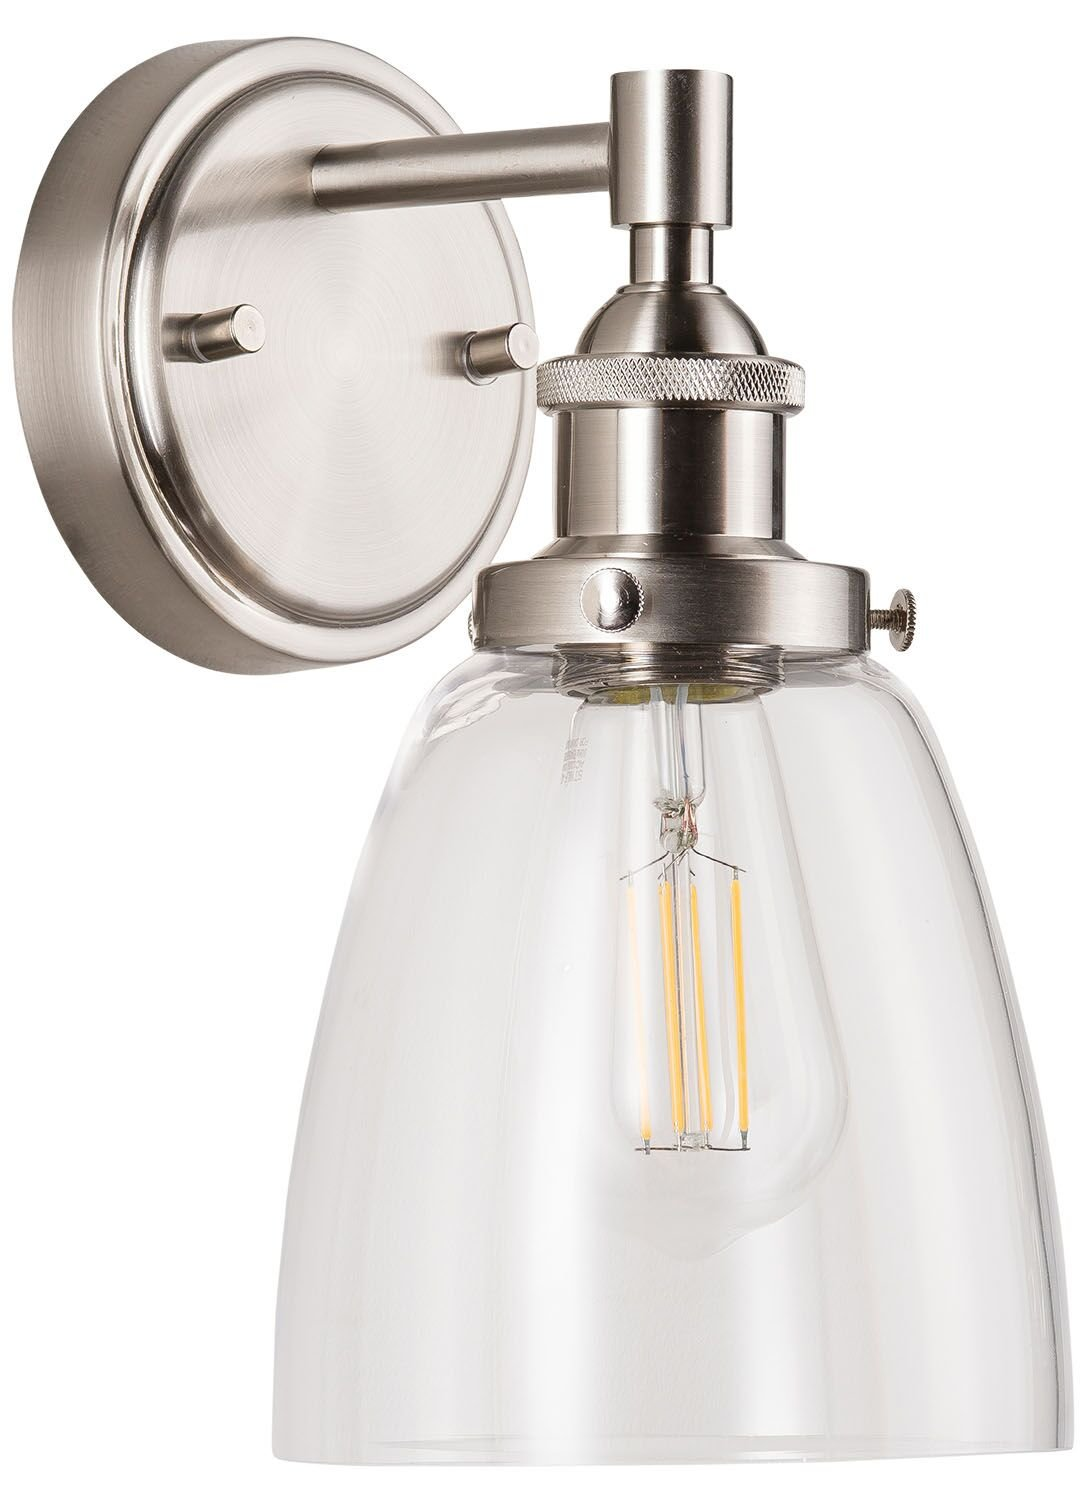 Fiorentino LED Industrial Wall Sconce – Brushed Nickel w/ Clear Glass - Linea di Liara LL-WL582-BN